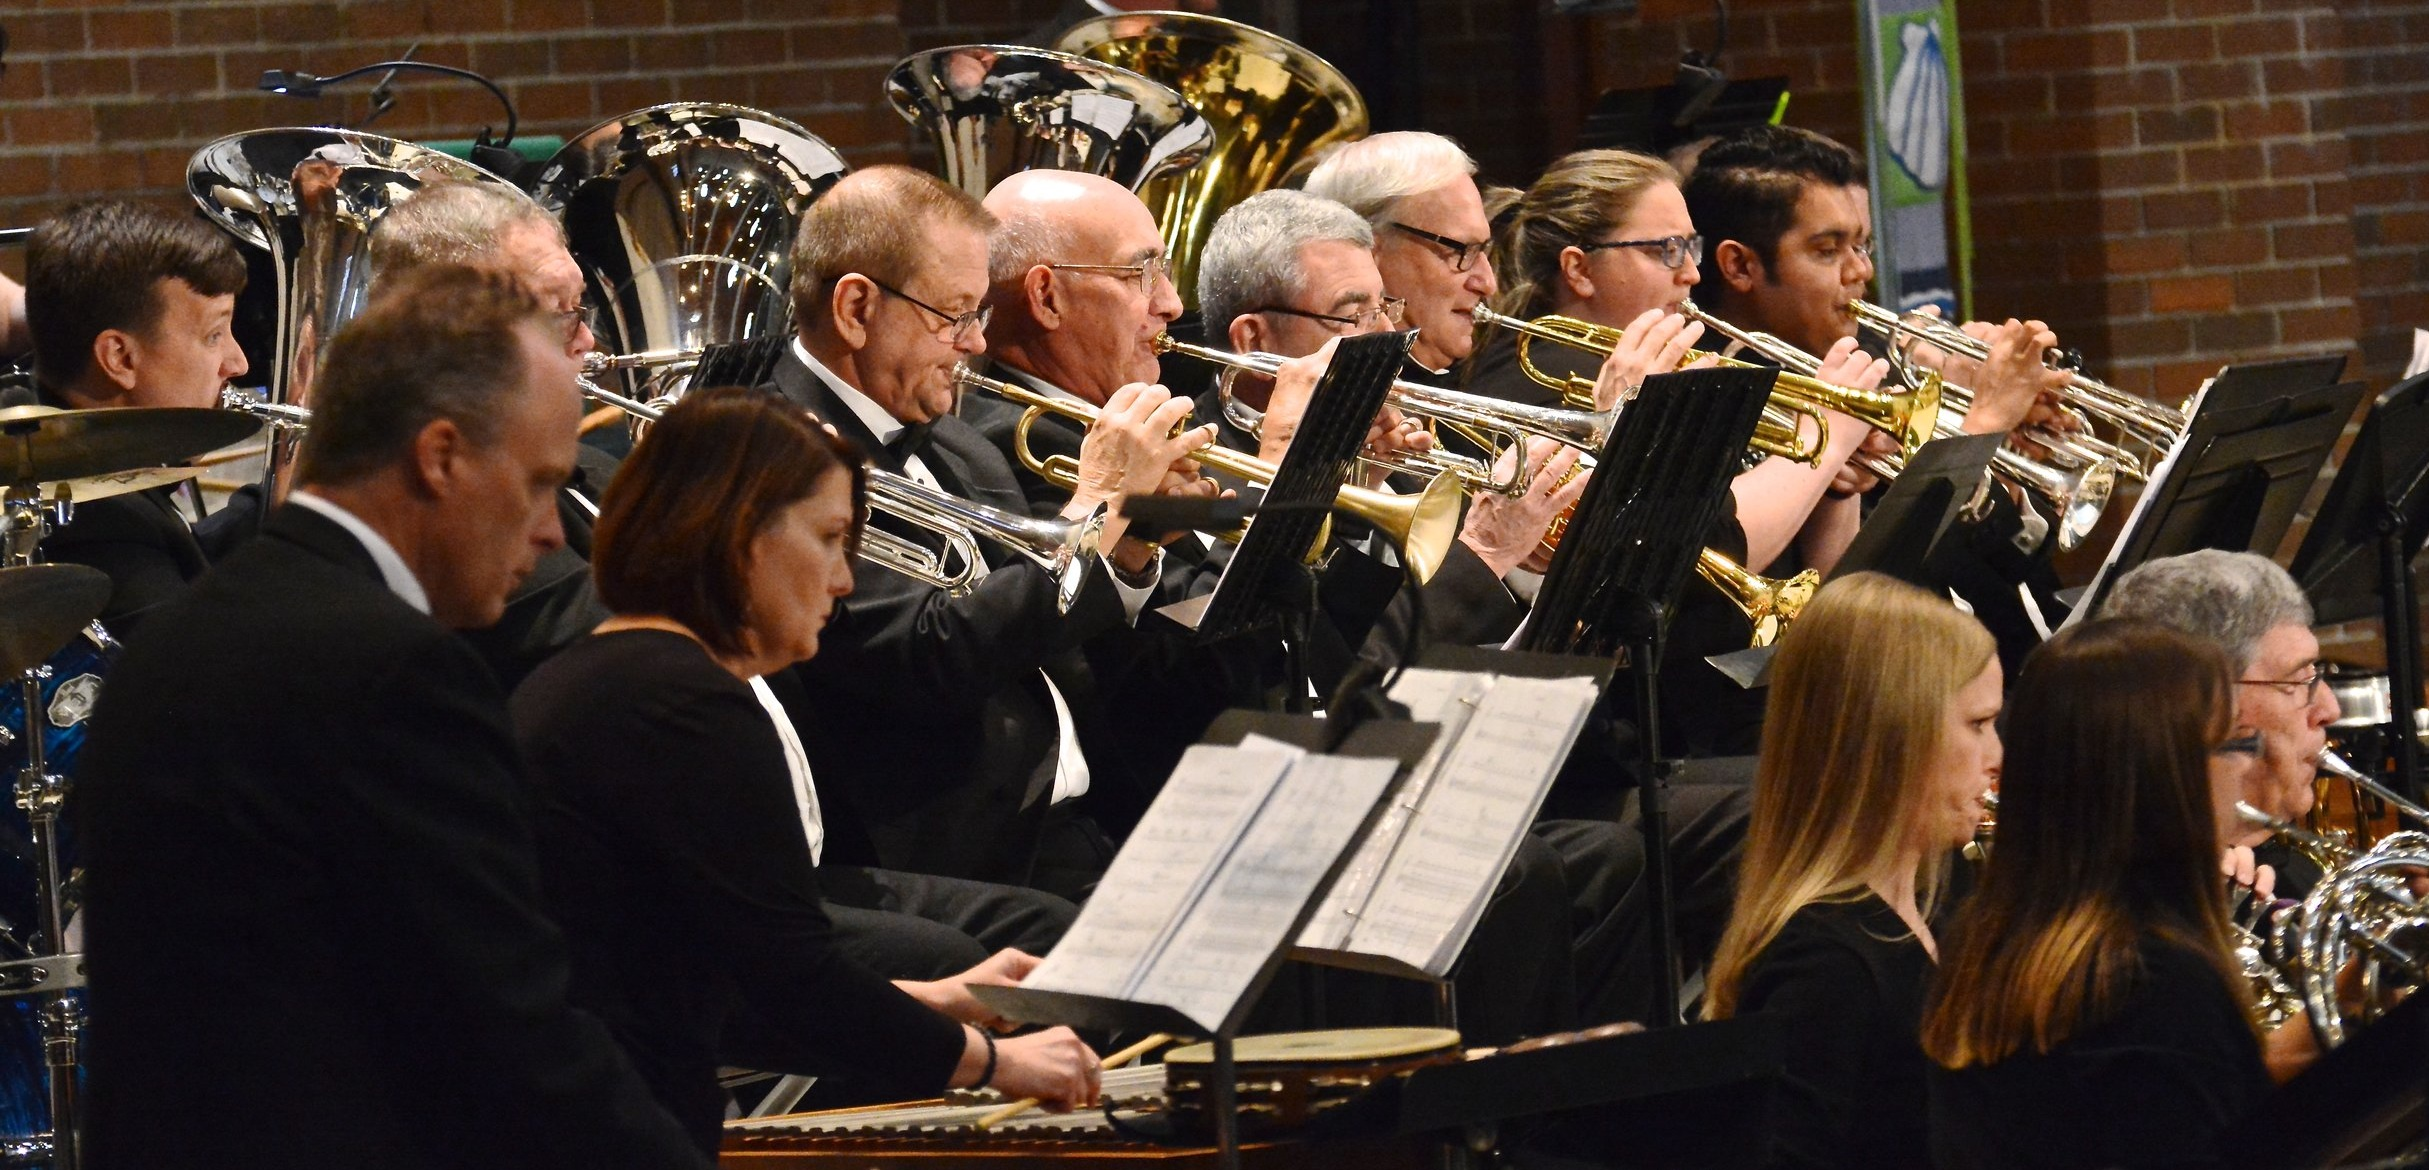 Let Freedom Ring!  Sunday, November 10, 2019, at 3 p.m.  The Orlando Concert Band and organist Ben Lane salute the Armed Forces with Veterans Day favorites like Battle Hymn of the Republic, America the Beautiful, God Bless America, and rousing Sousa marches!